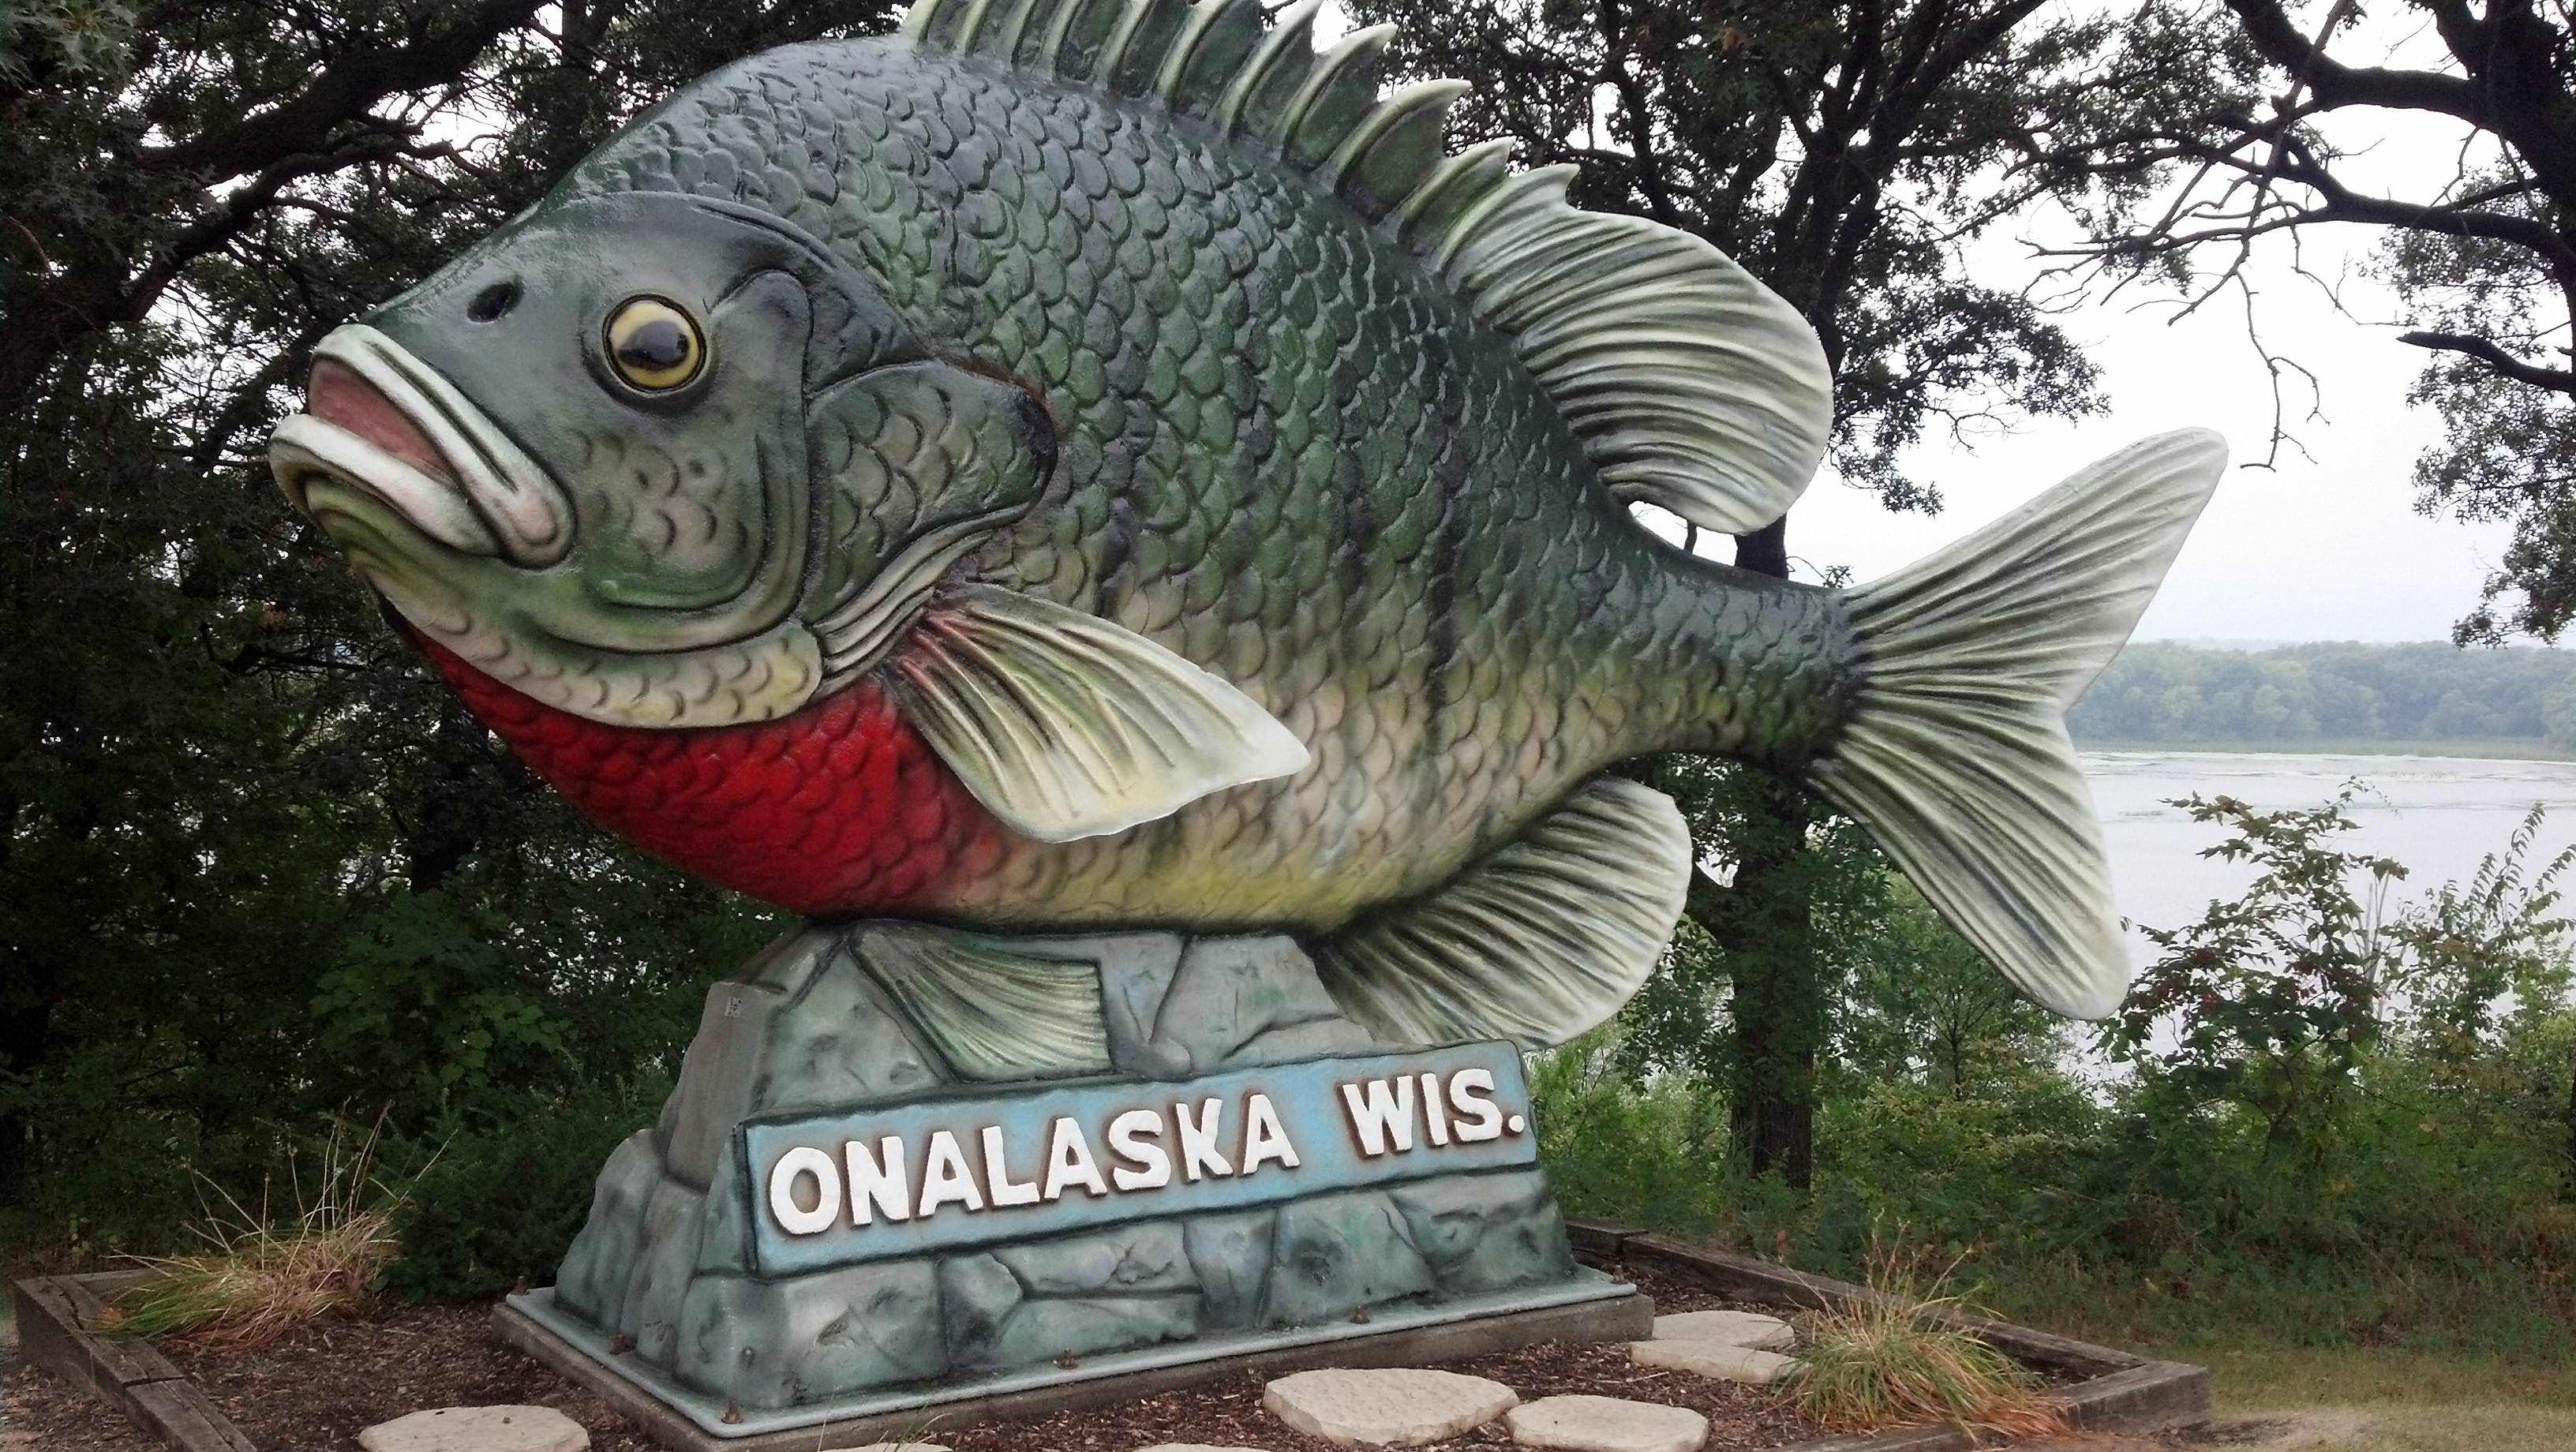 Who wouldn't want to stop to take a picture with this whopper? It's the official Sunfish ambassador of Onalaska, Wis.